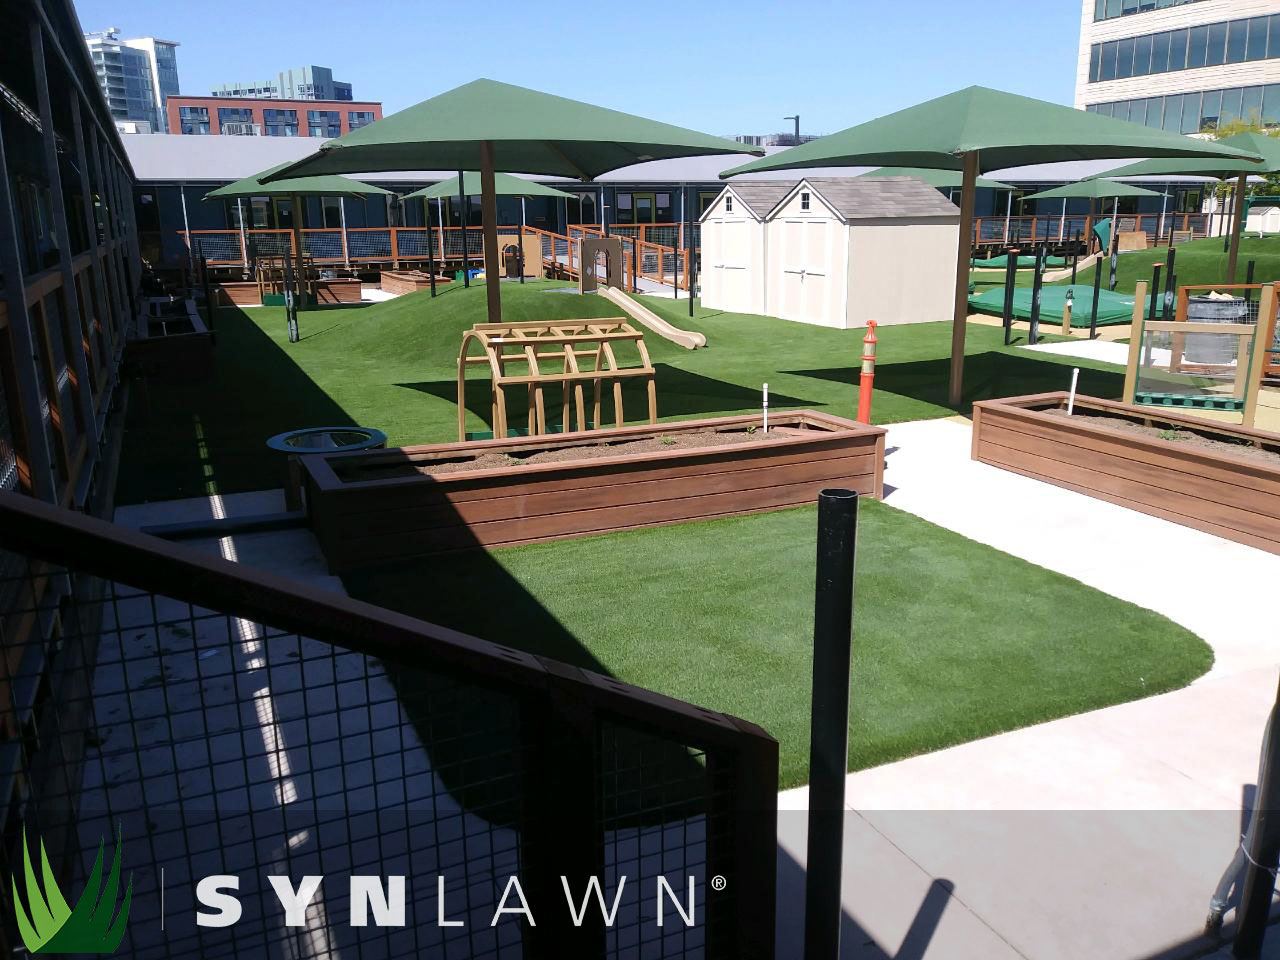 SYNLawn Playground Photo 2